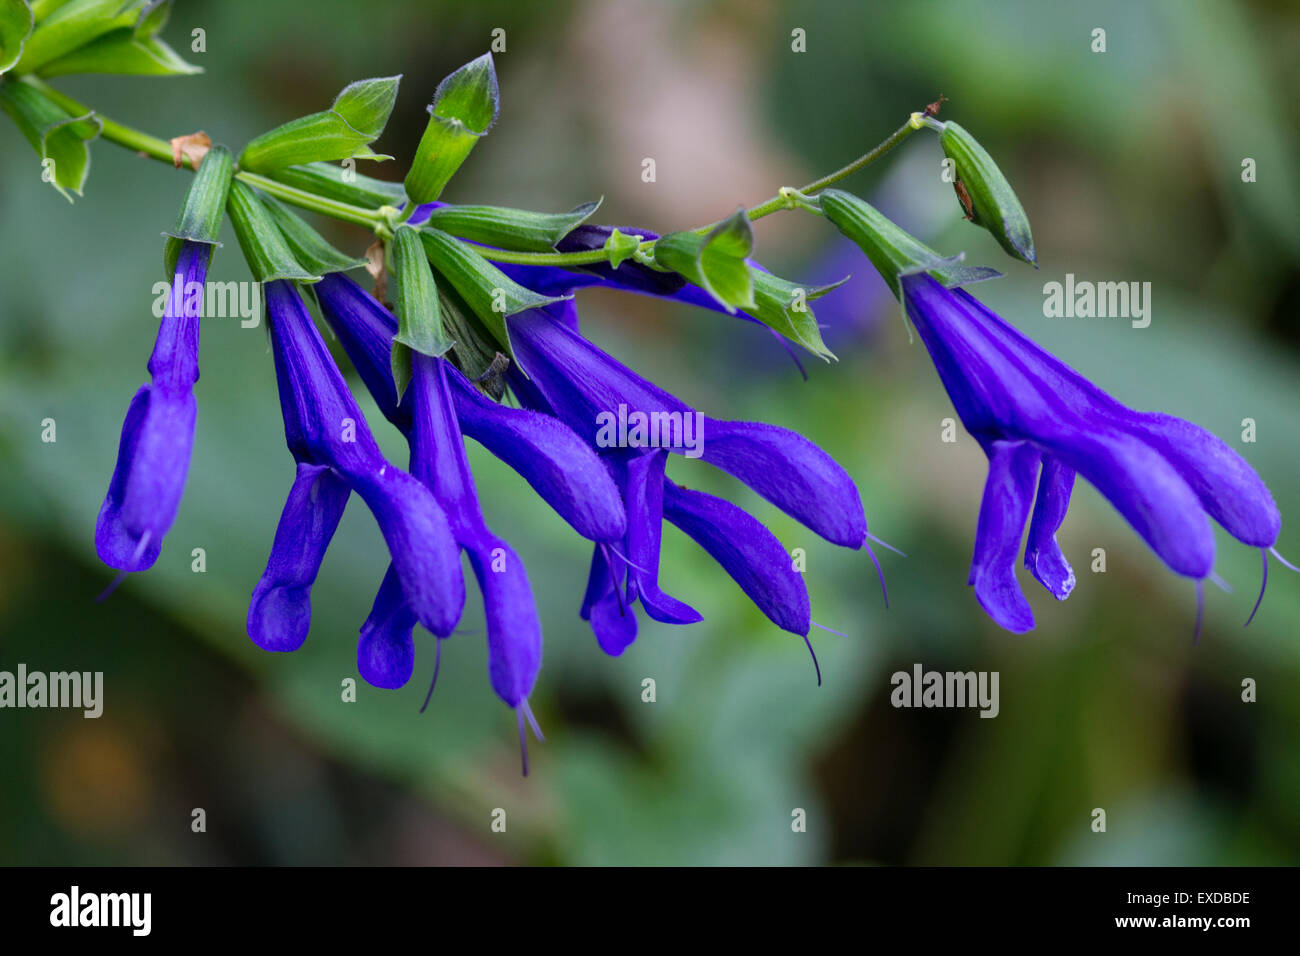 Blue flowers of the summer to autumn blooming perennial sage salvia blue flowers of the summer to autumn blooming perennial sage salvia guaranitica blue enigma izmirmasajfo